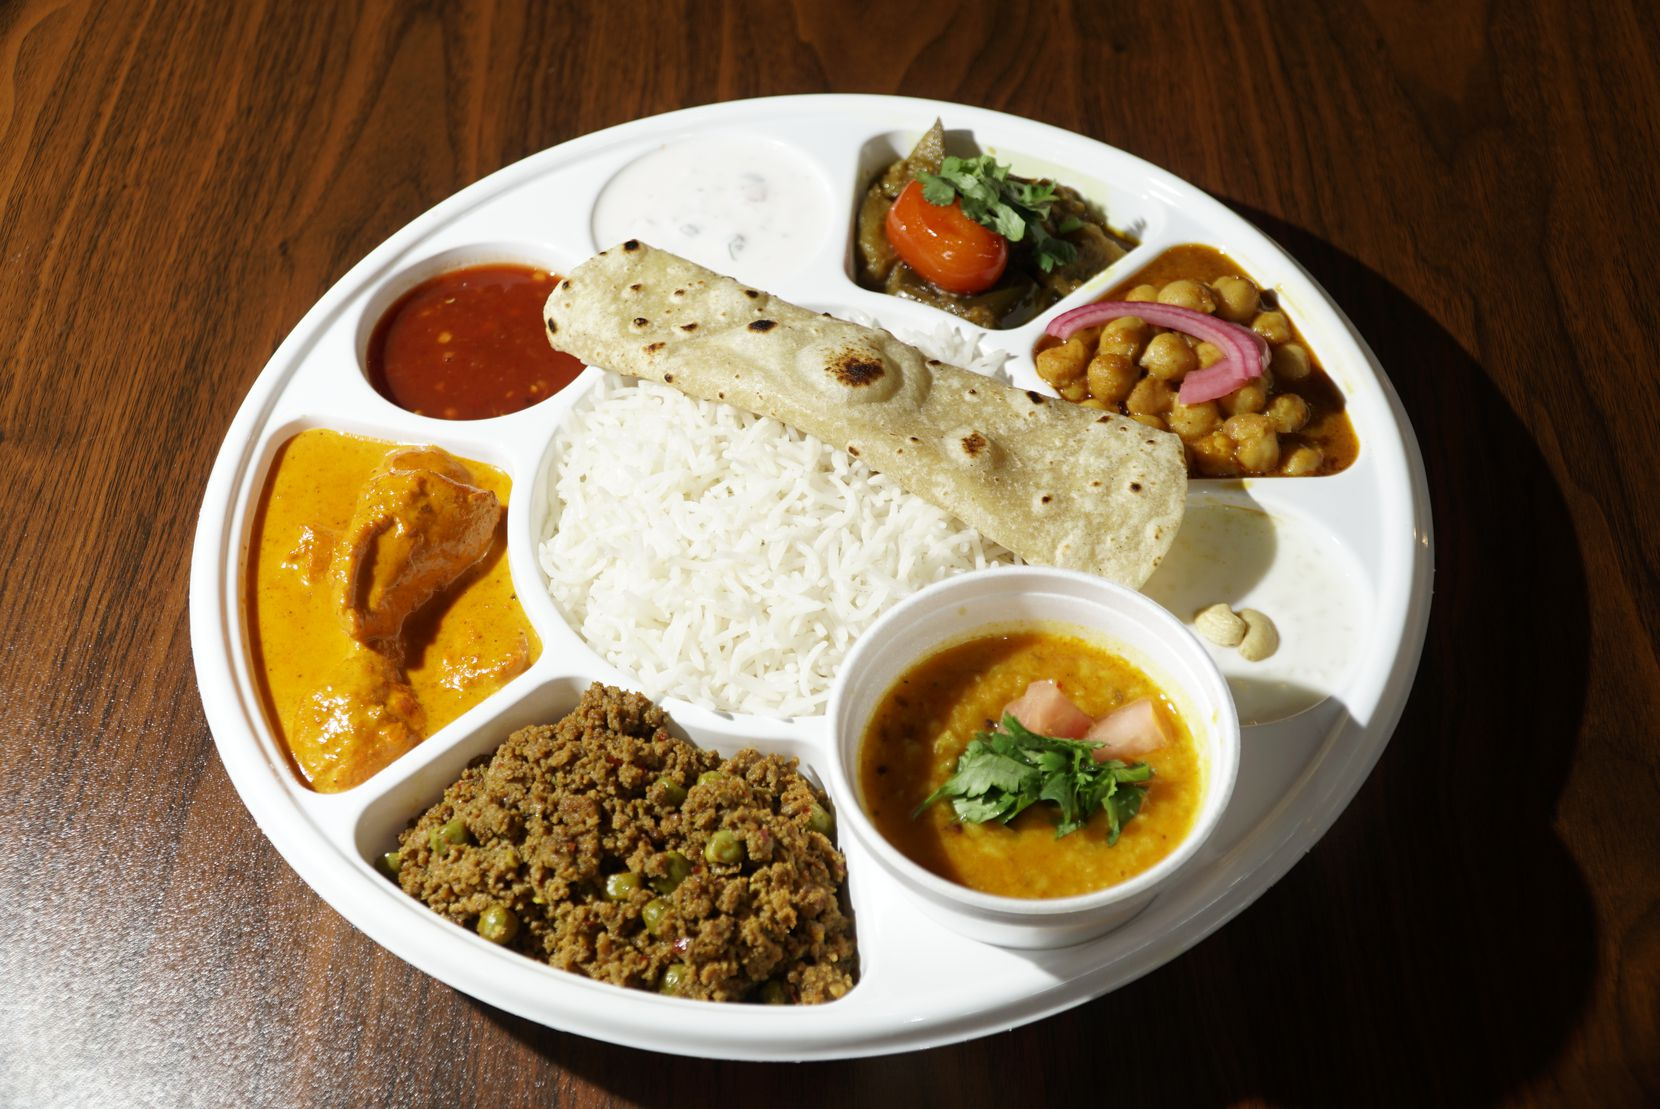 Meat Thali dish at 8 Cloves in Dallas